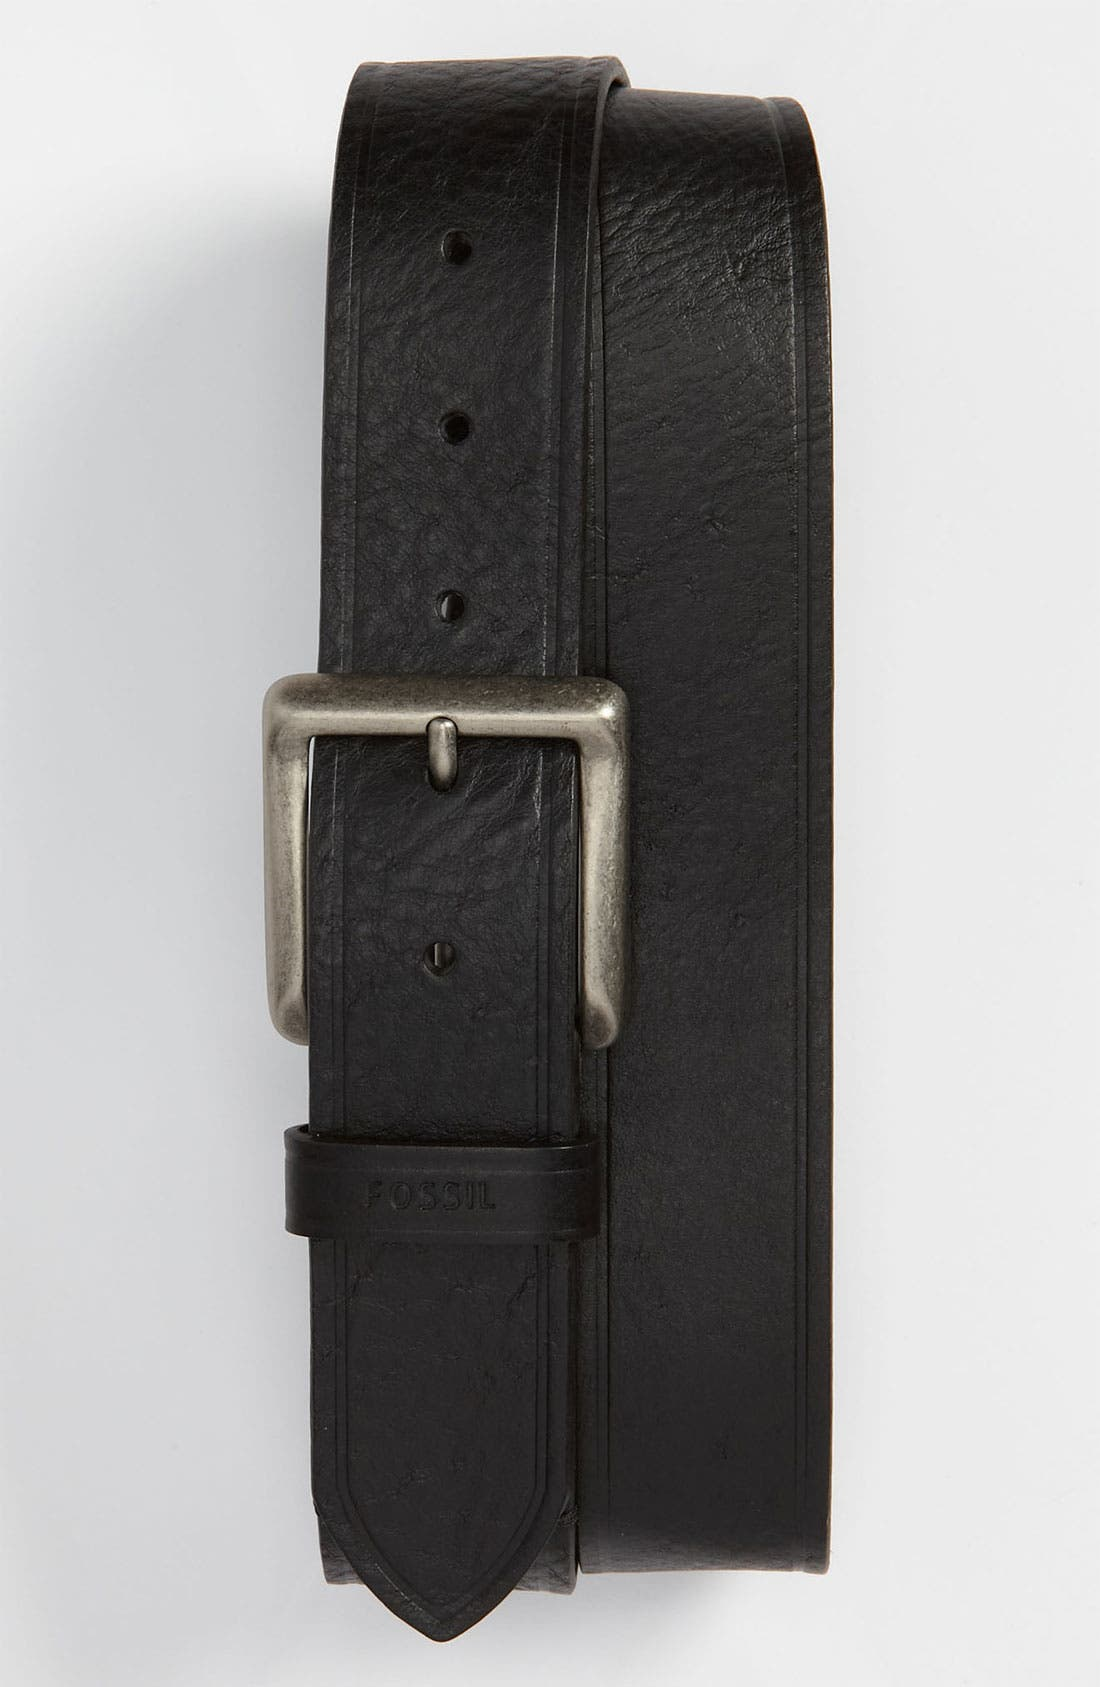 Main Image - Fossil 'Maxim' Leather Belt